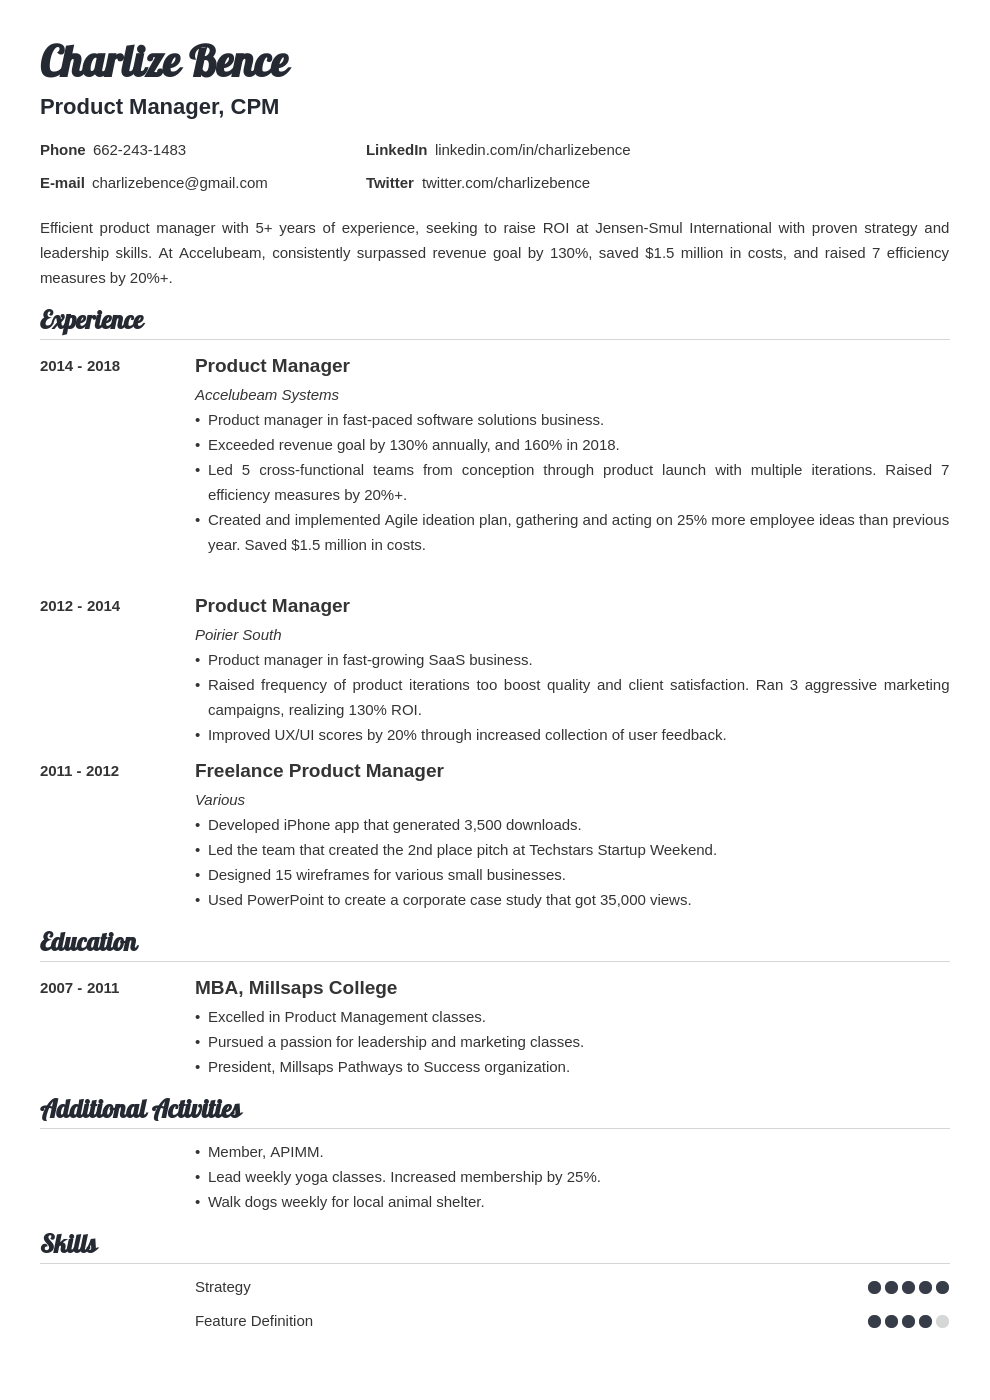 product manager template valera uk